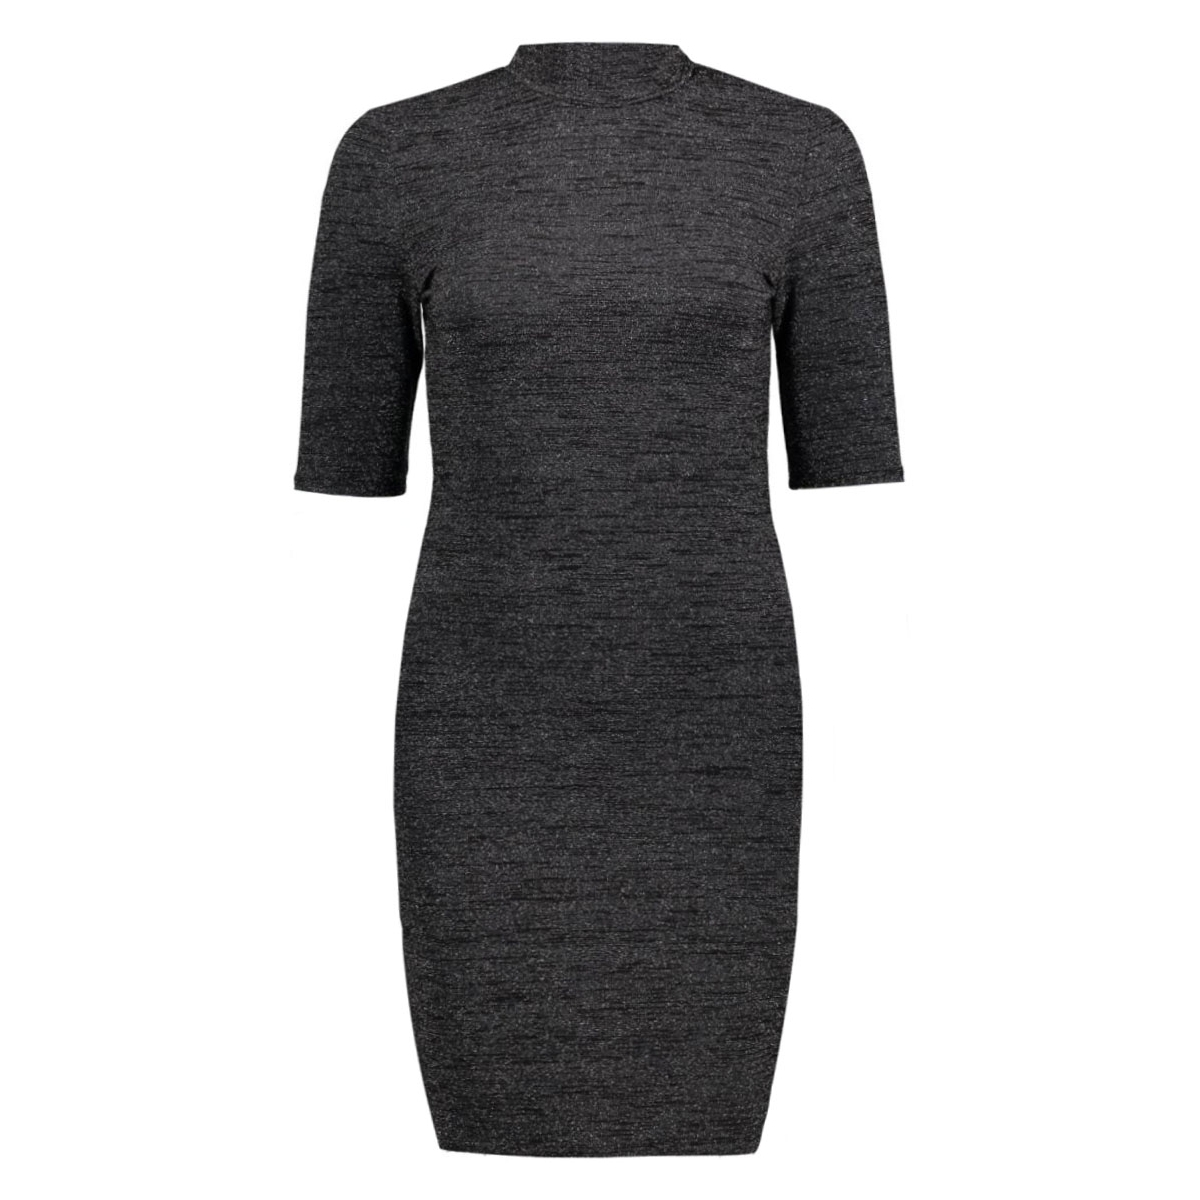 onlroma 2/4 turtleneck short dress 15131757 only jurk black/silver